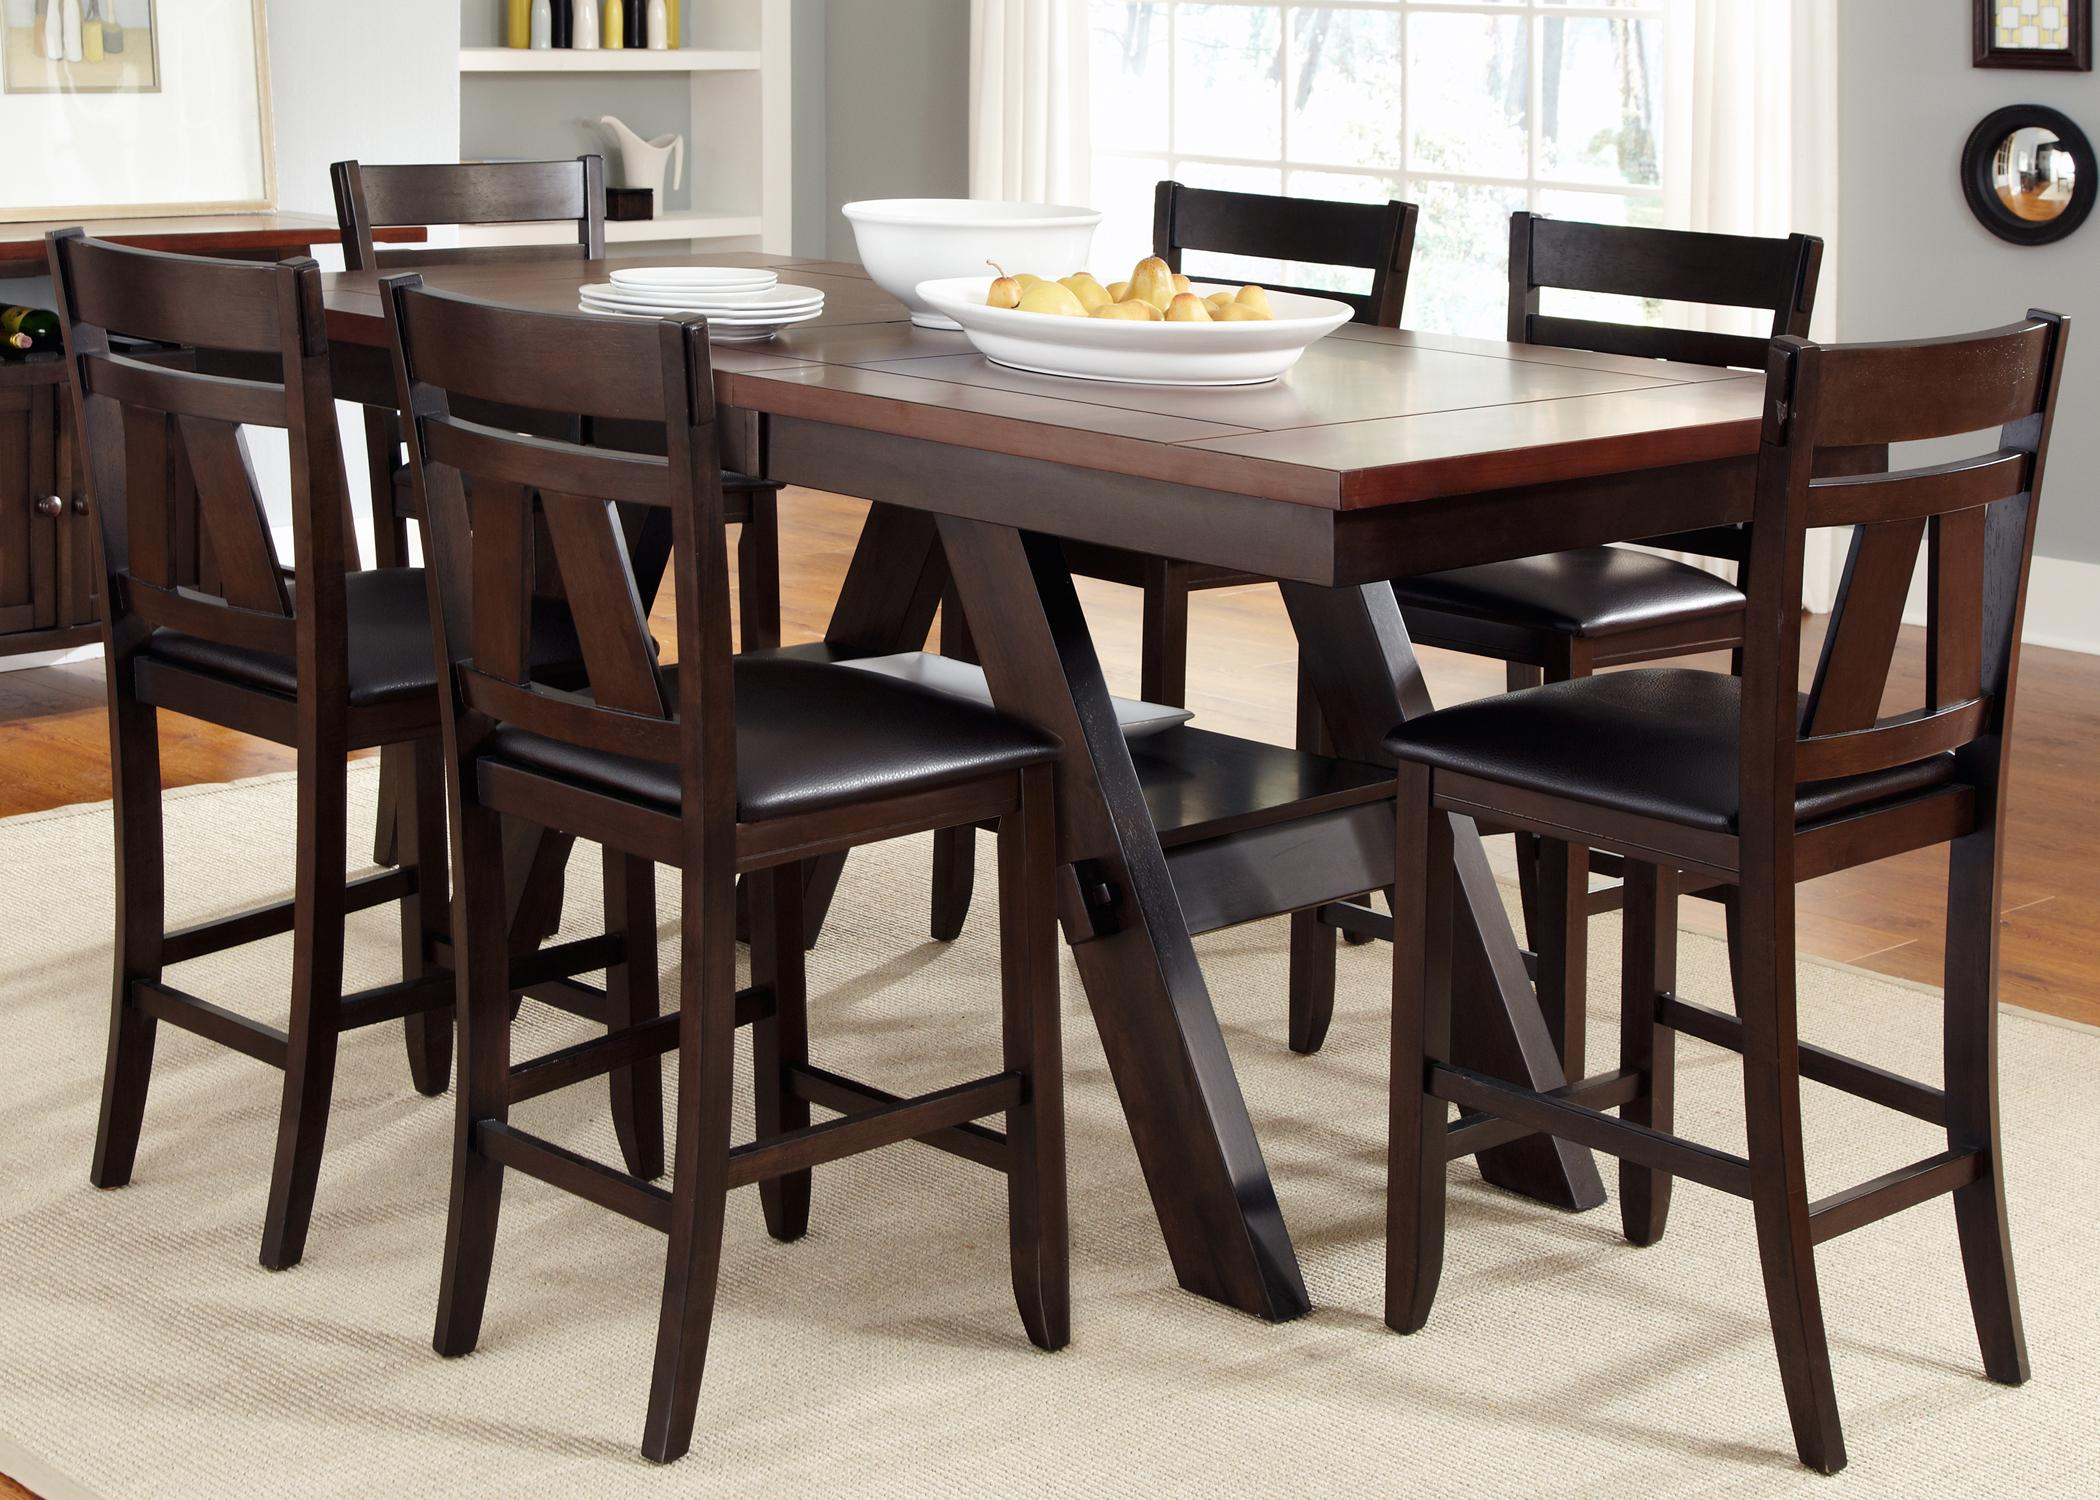 Liberty Furniture Lawson 7 Piece Trestle Gathering Table With Counter Height Chairs Set Darvin Furniture Pub Table And Stool Sets